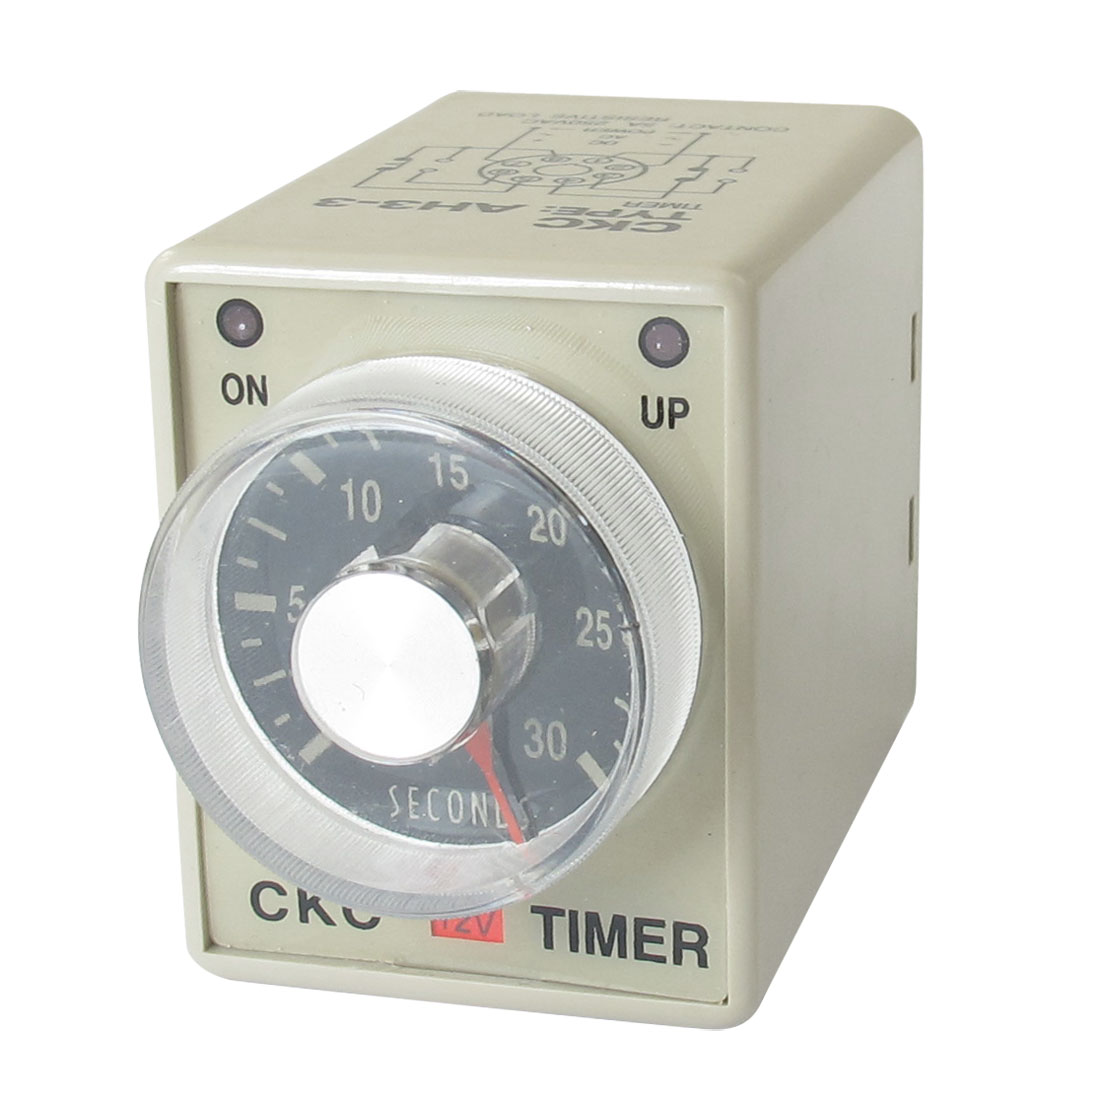 AH3-3 On/Up LED Indicator Power On Timing Relay DPDT 0-30s 30 Sec 12V DC